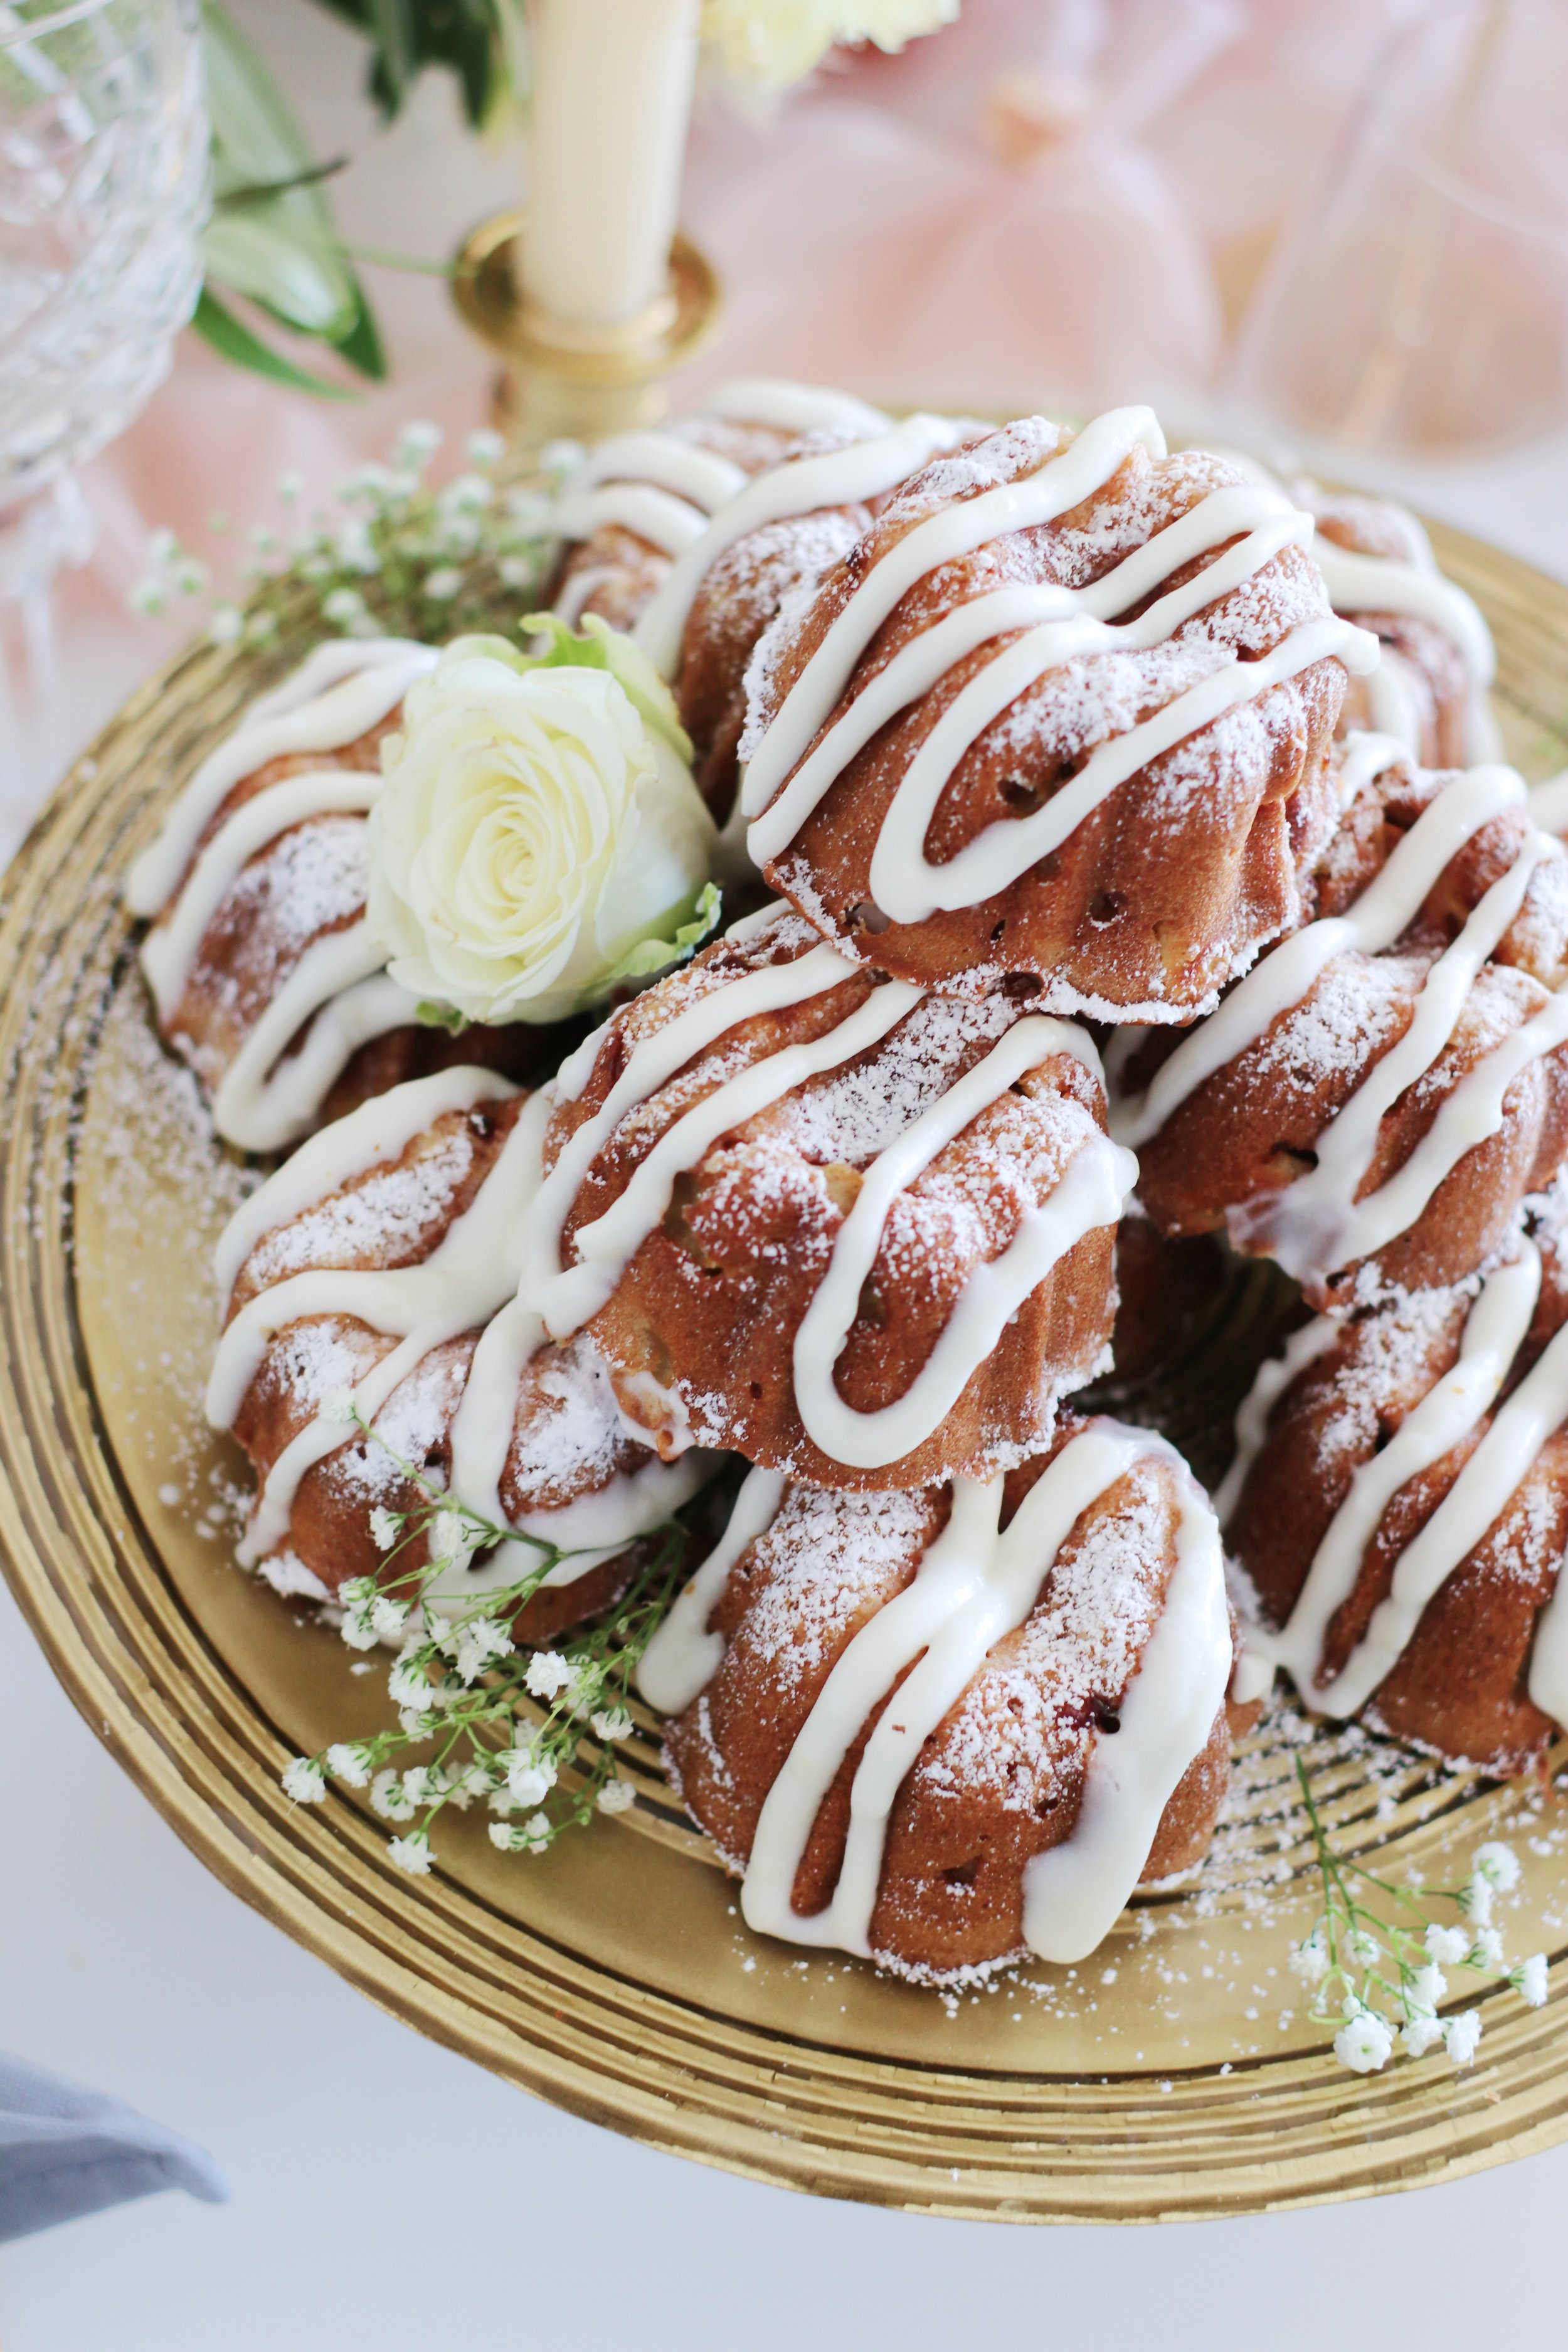 mini-apple-cake-recipe-rosh-hashanah-bundt-39243